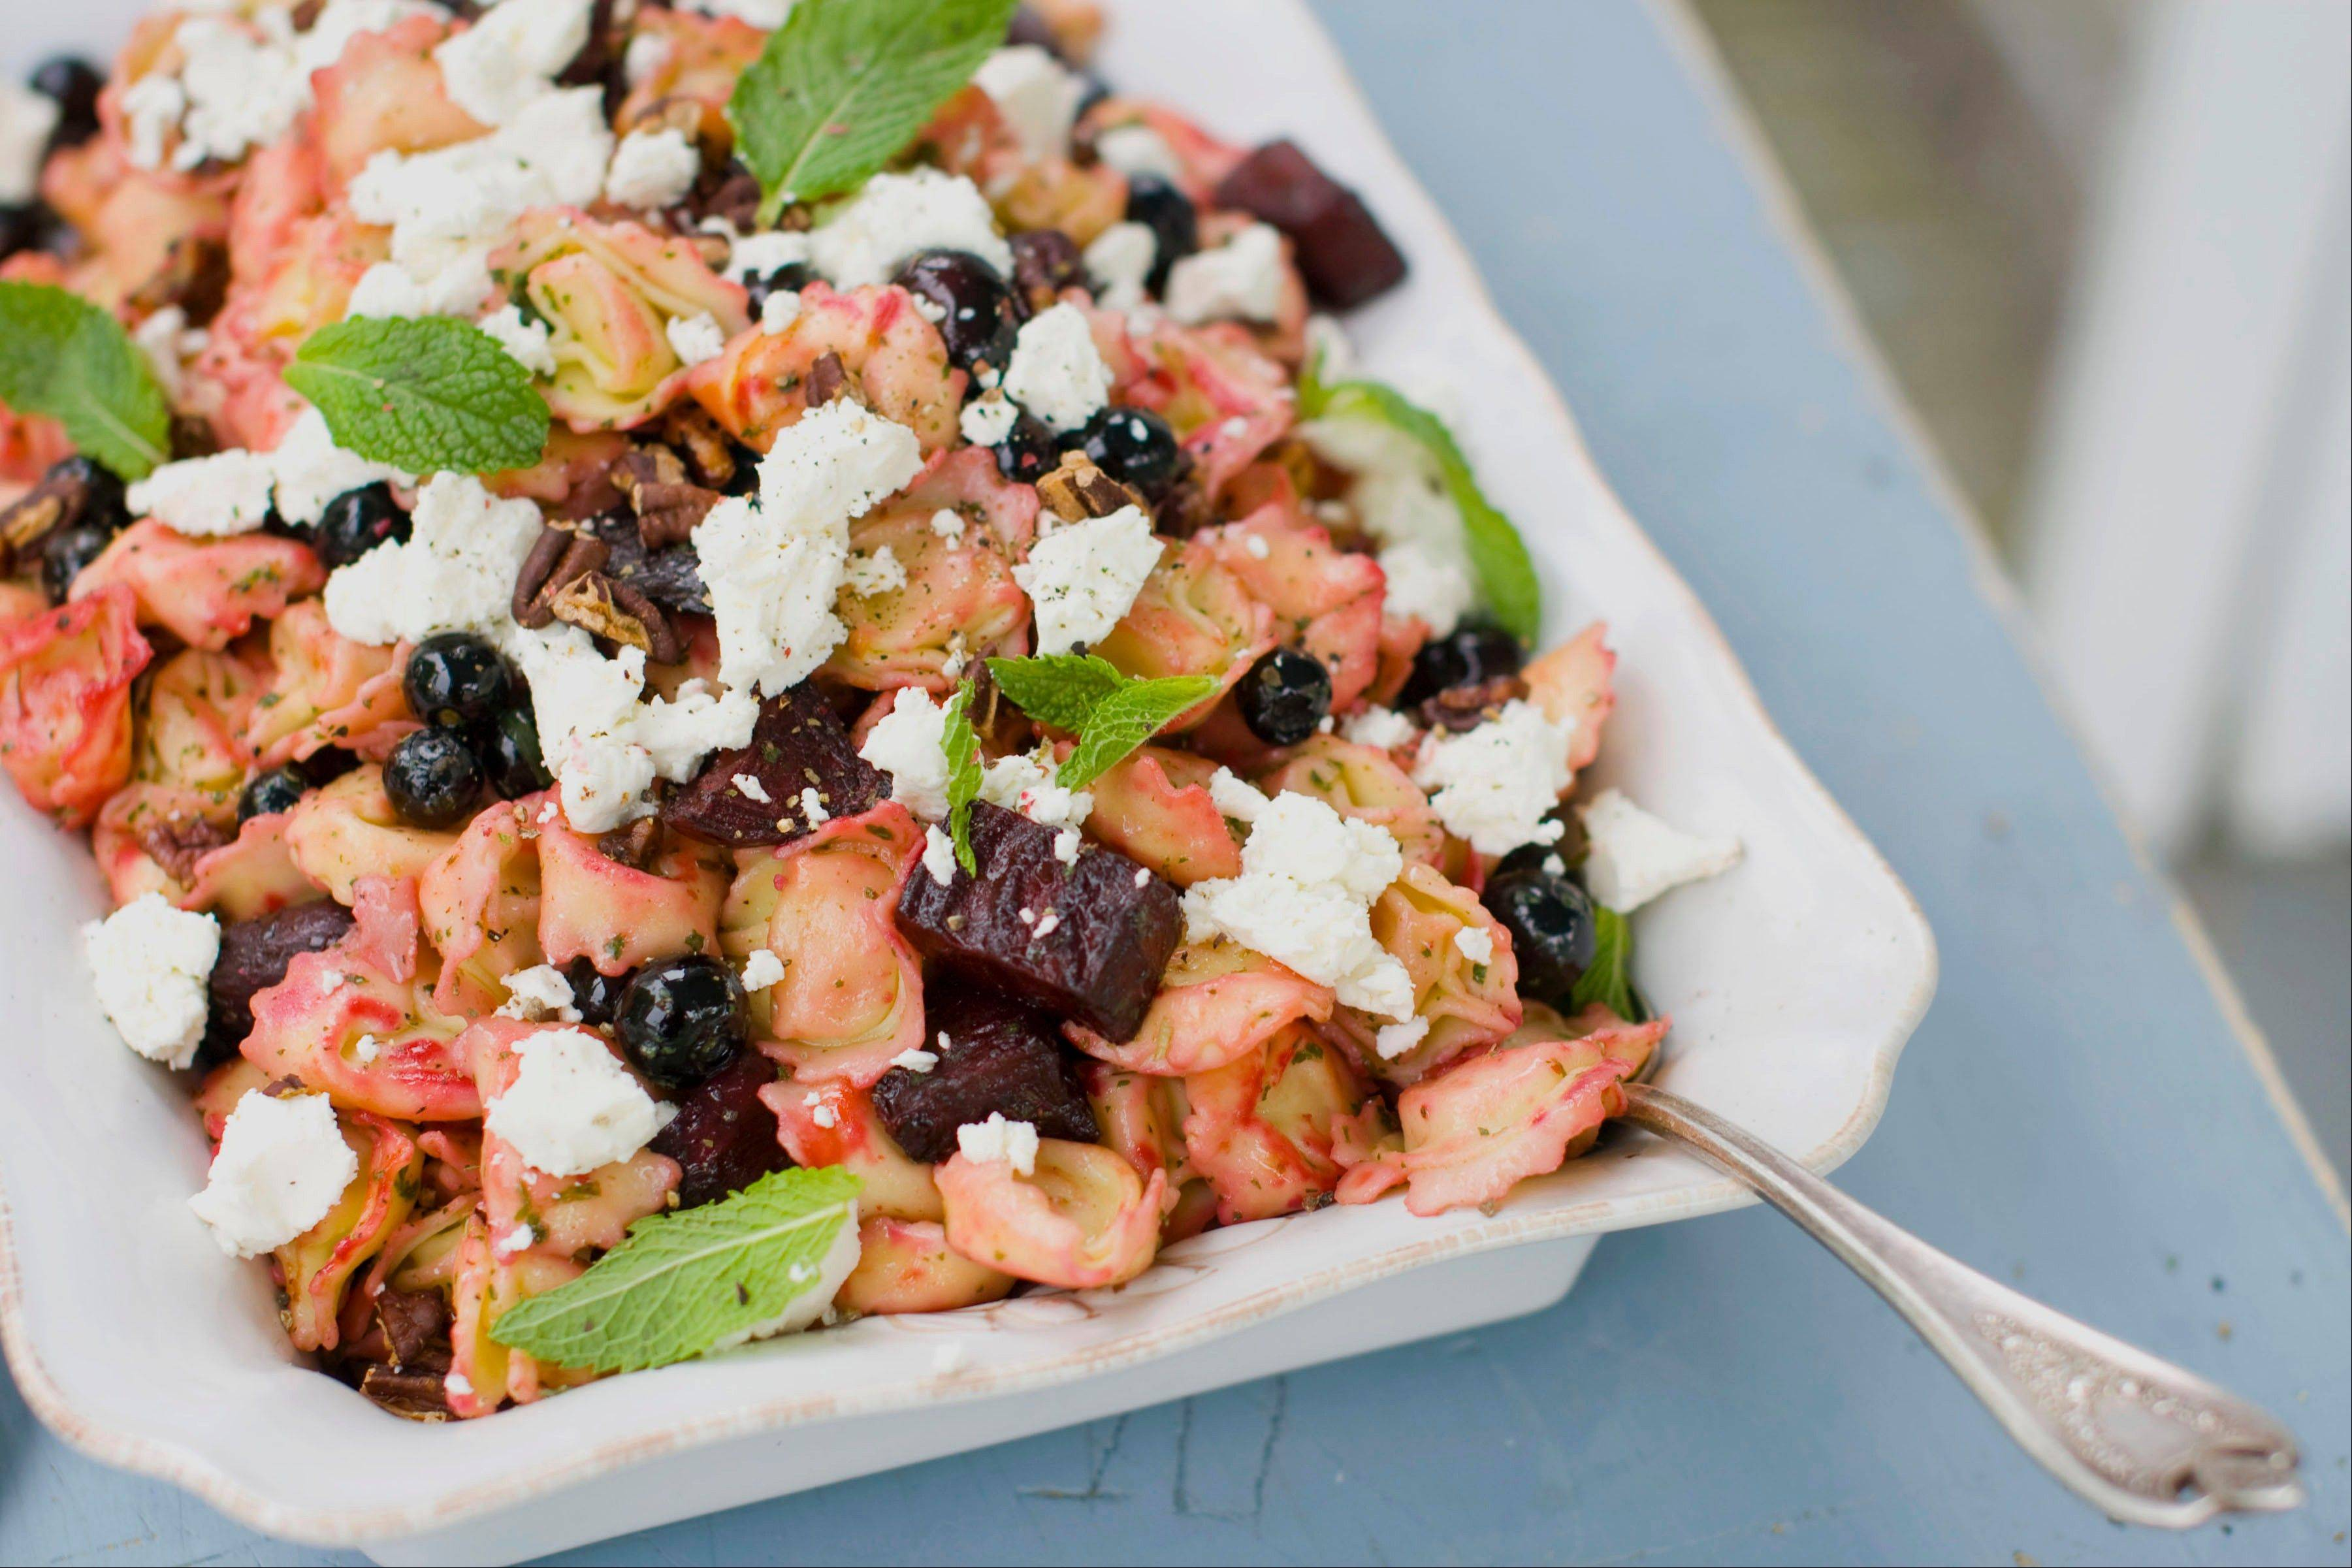 Roasted Beets Trotellini Salad